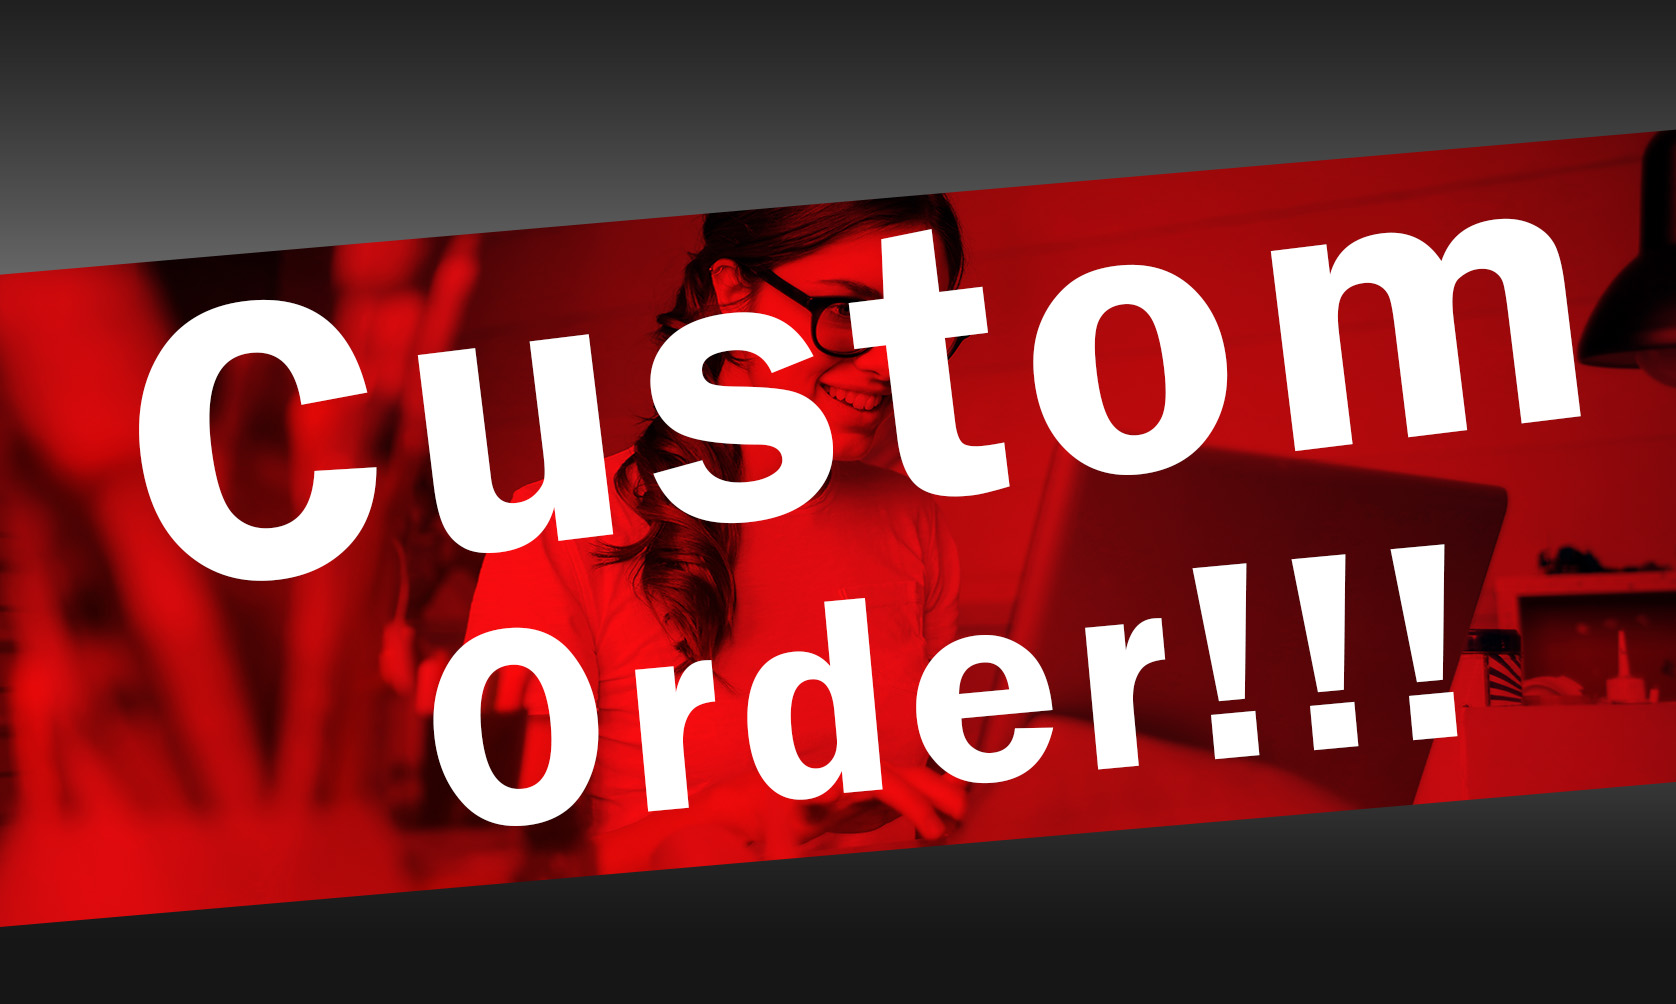 This is a custom order for my client. Don't orders